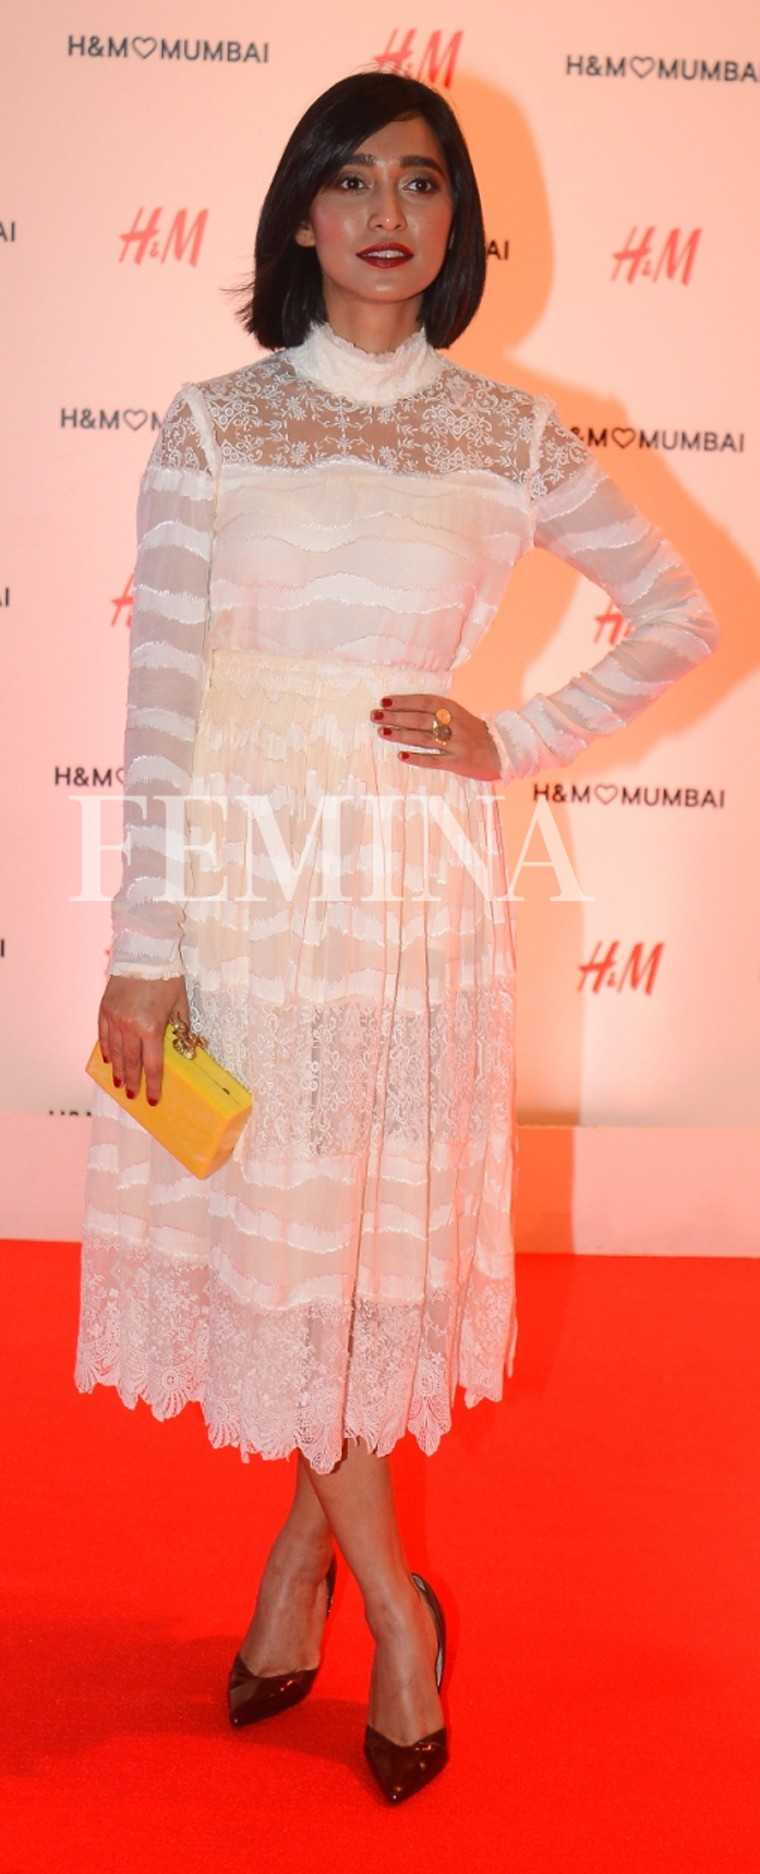 SAYANI GUPTA: Sayani went for a virginal white number by H&M which she made evening appropriate with a bright box clutch and maroon pumps.